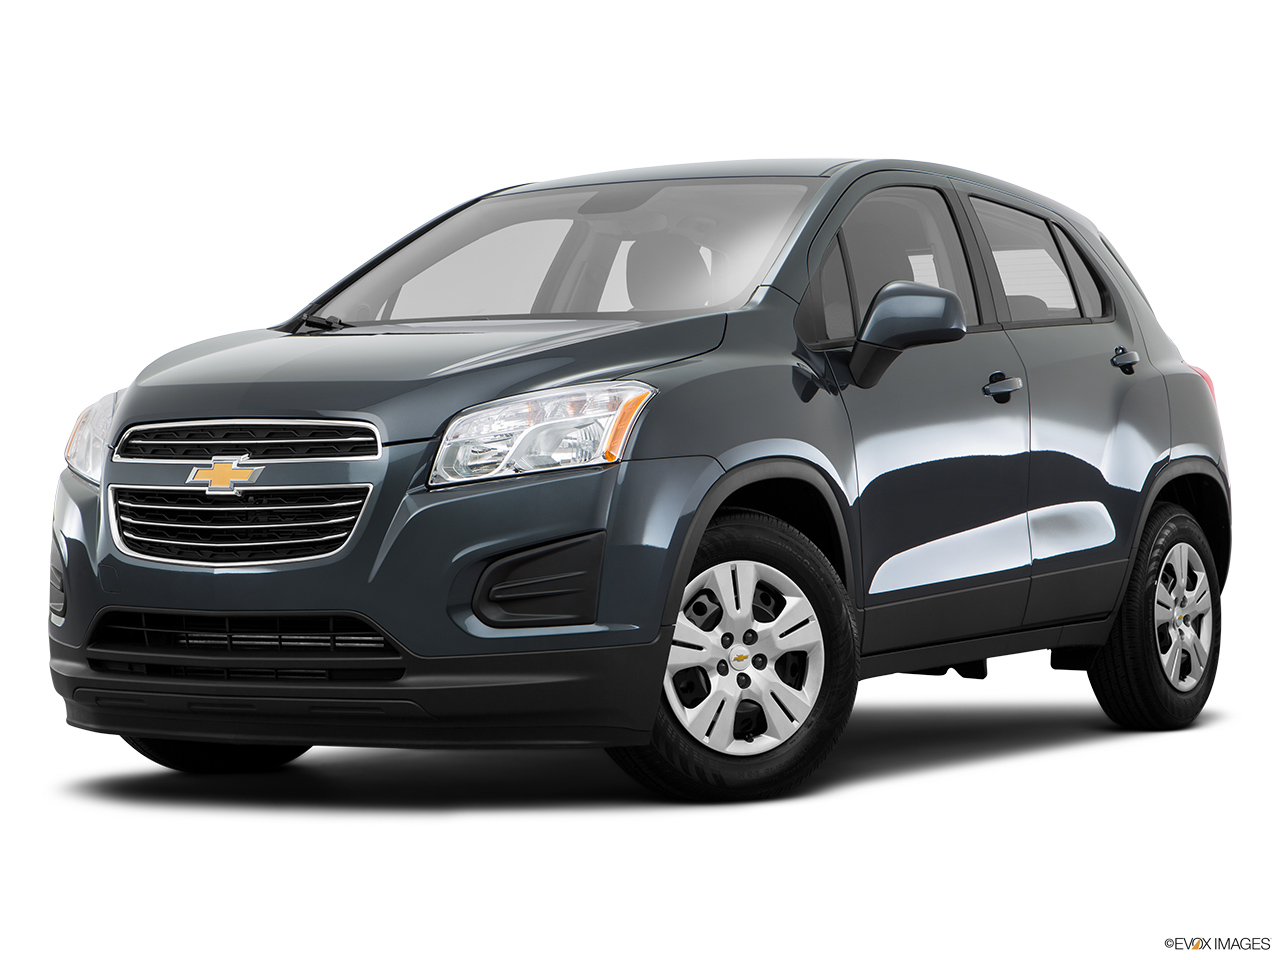 Car Pictures List for Chevrolet Trax 2016 1.8L LT FWD (UAE ...